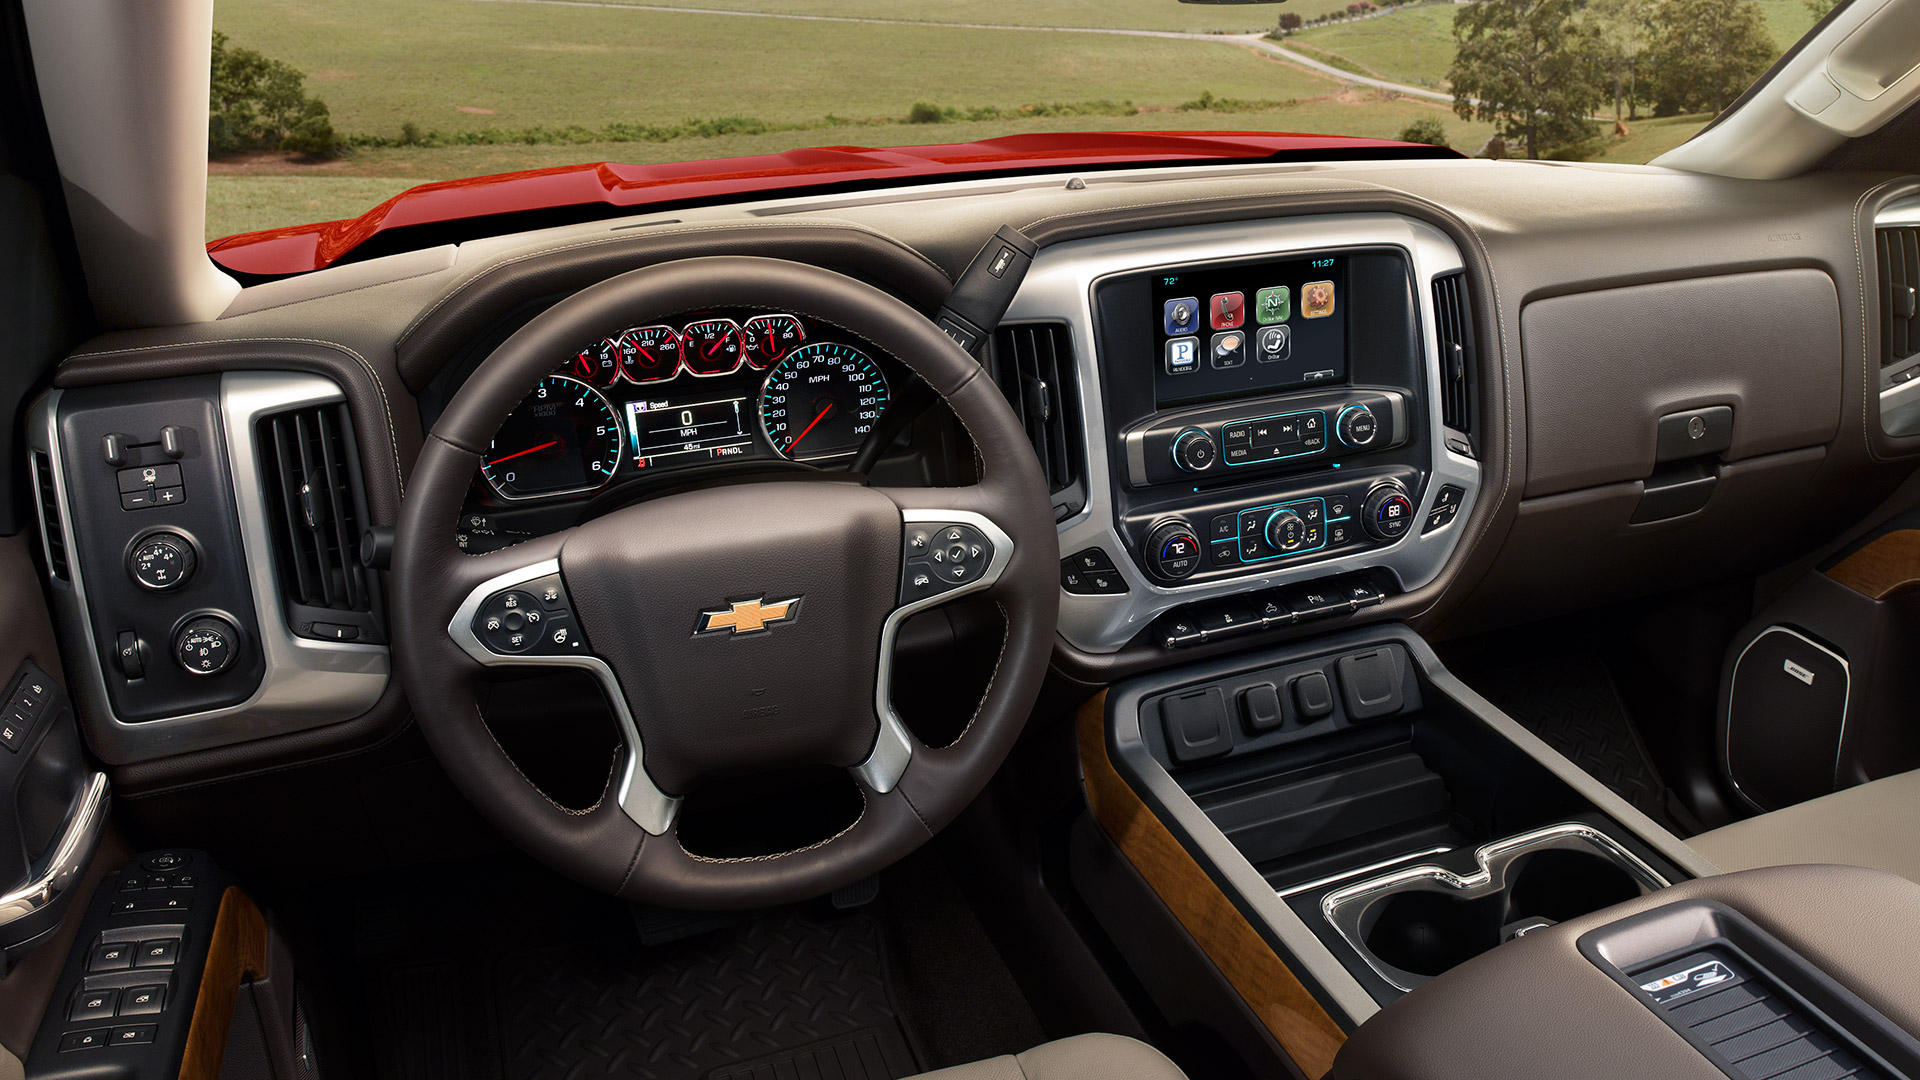 Interior of the 2017 Chevrolet Silverado 1500